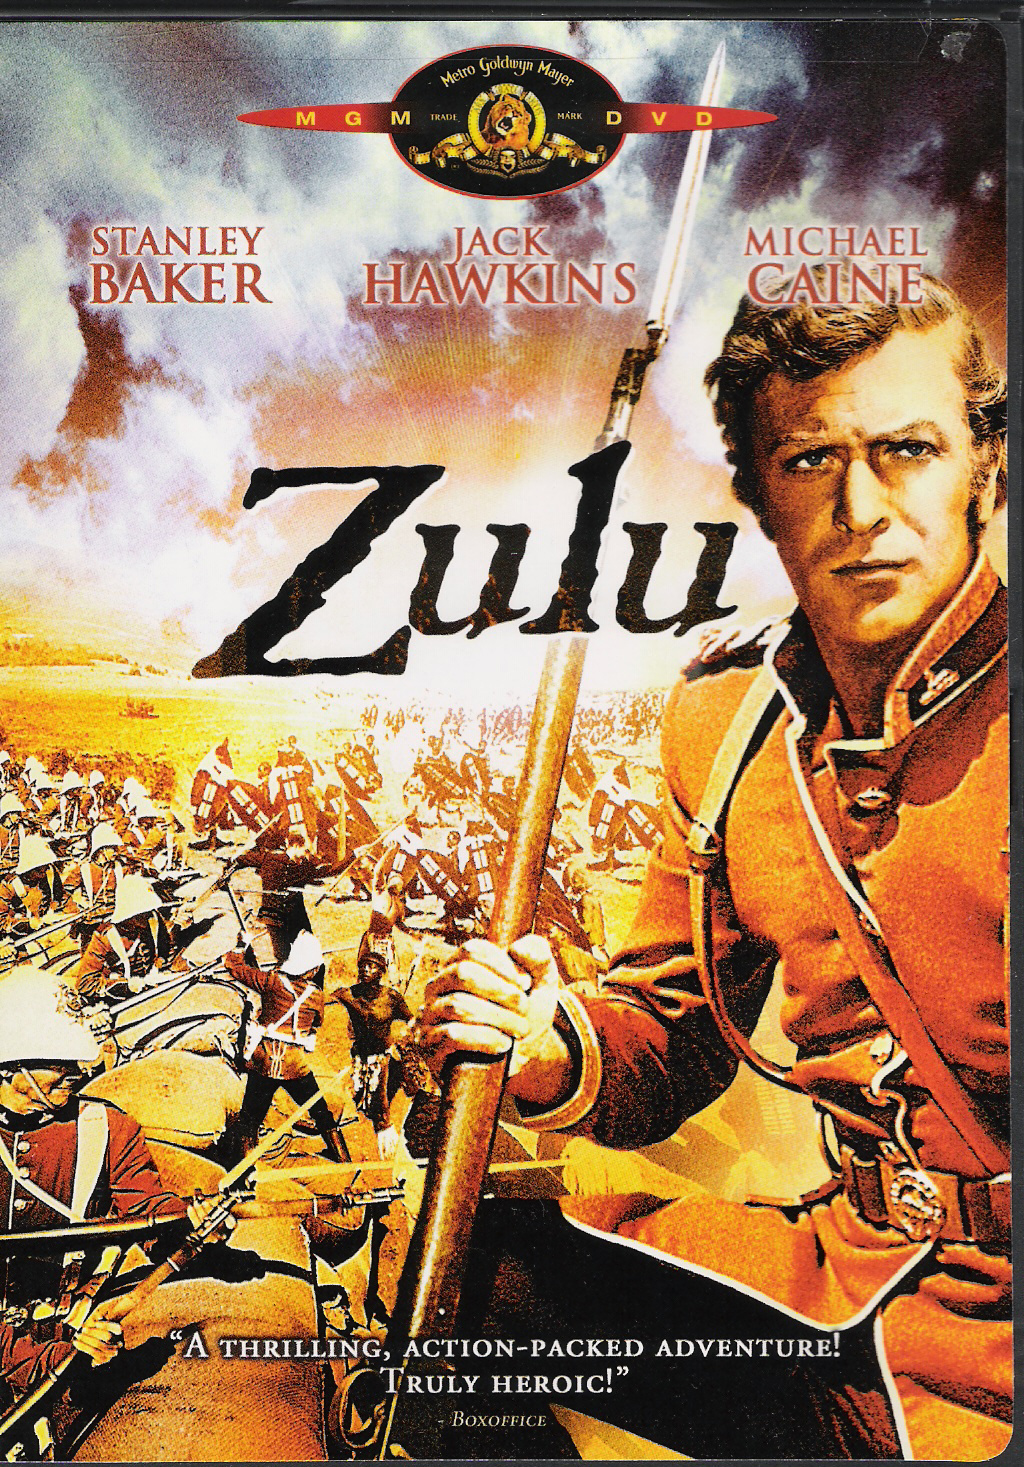 https://draltang.files.wordpress.com/2007/04/zulu.jpg#The%20movie%20Zulu%201024x1467